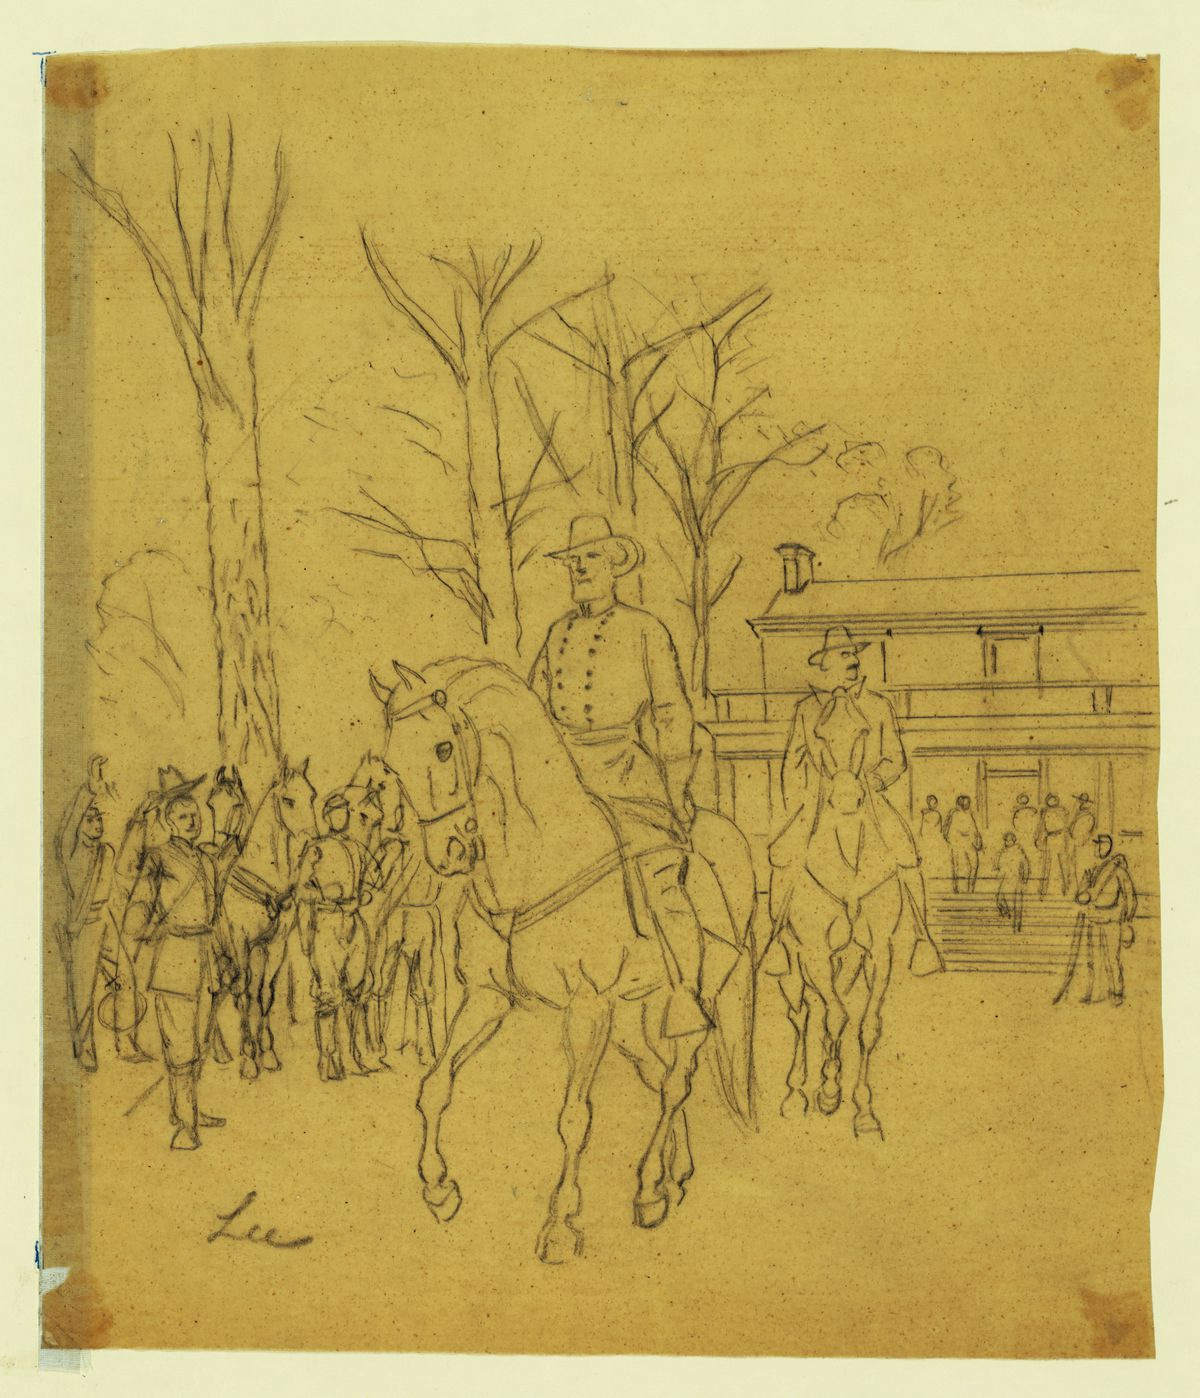 Robert E. Lee rides away from the courthouse.